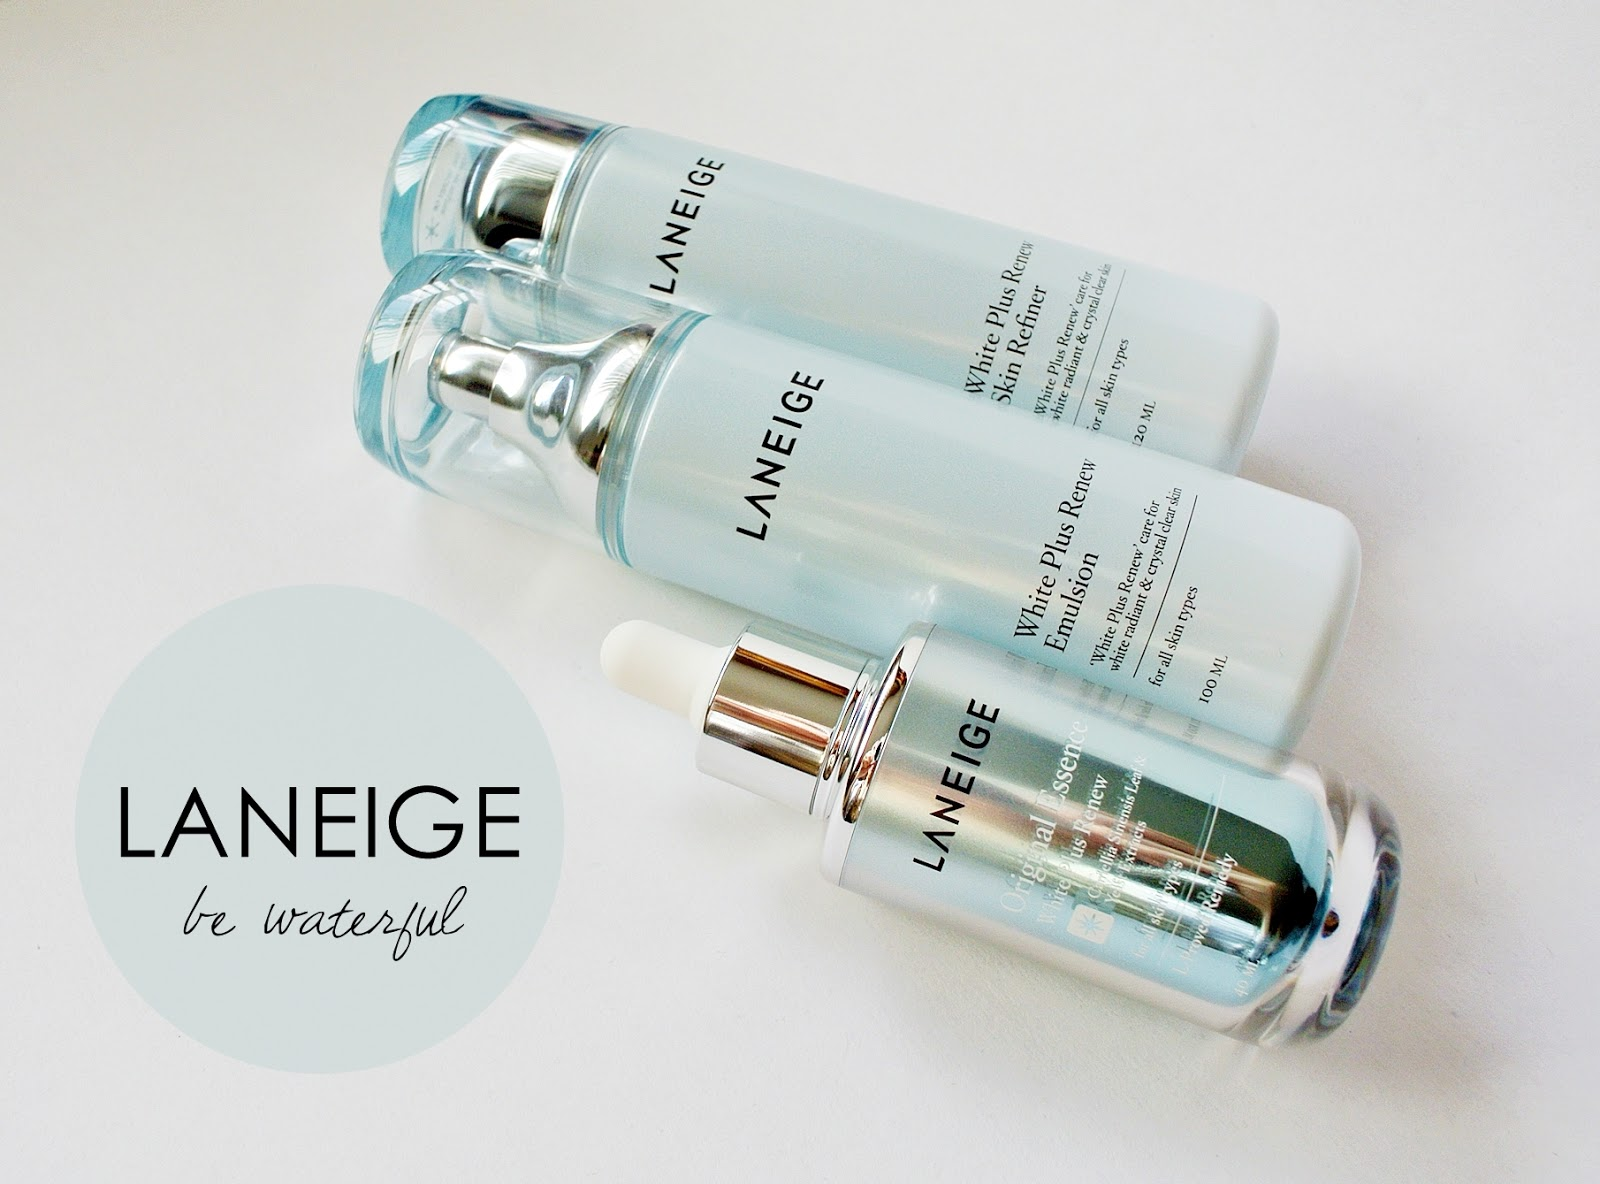 Thebunniehole Vancouver Youtuber Blogger Review Laneige White Plus Renew Trial Kit 4 Items Of Picking Up Some My First Asian Skincare Products In Pretty Bottles Teenage Years And Cradling Them Home Like Little Treasures